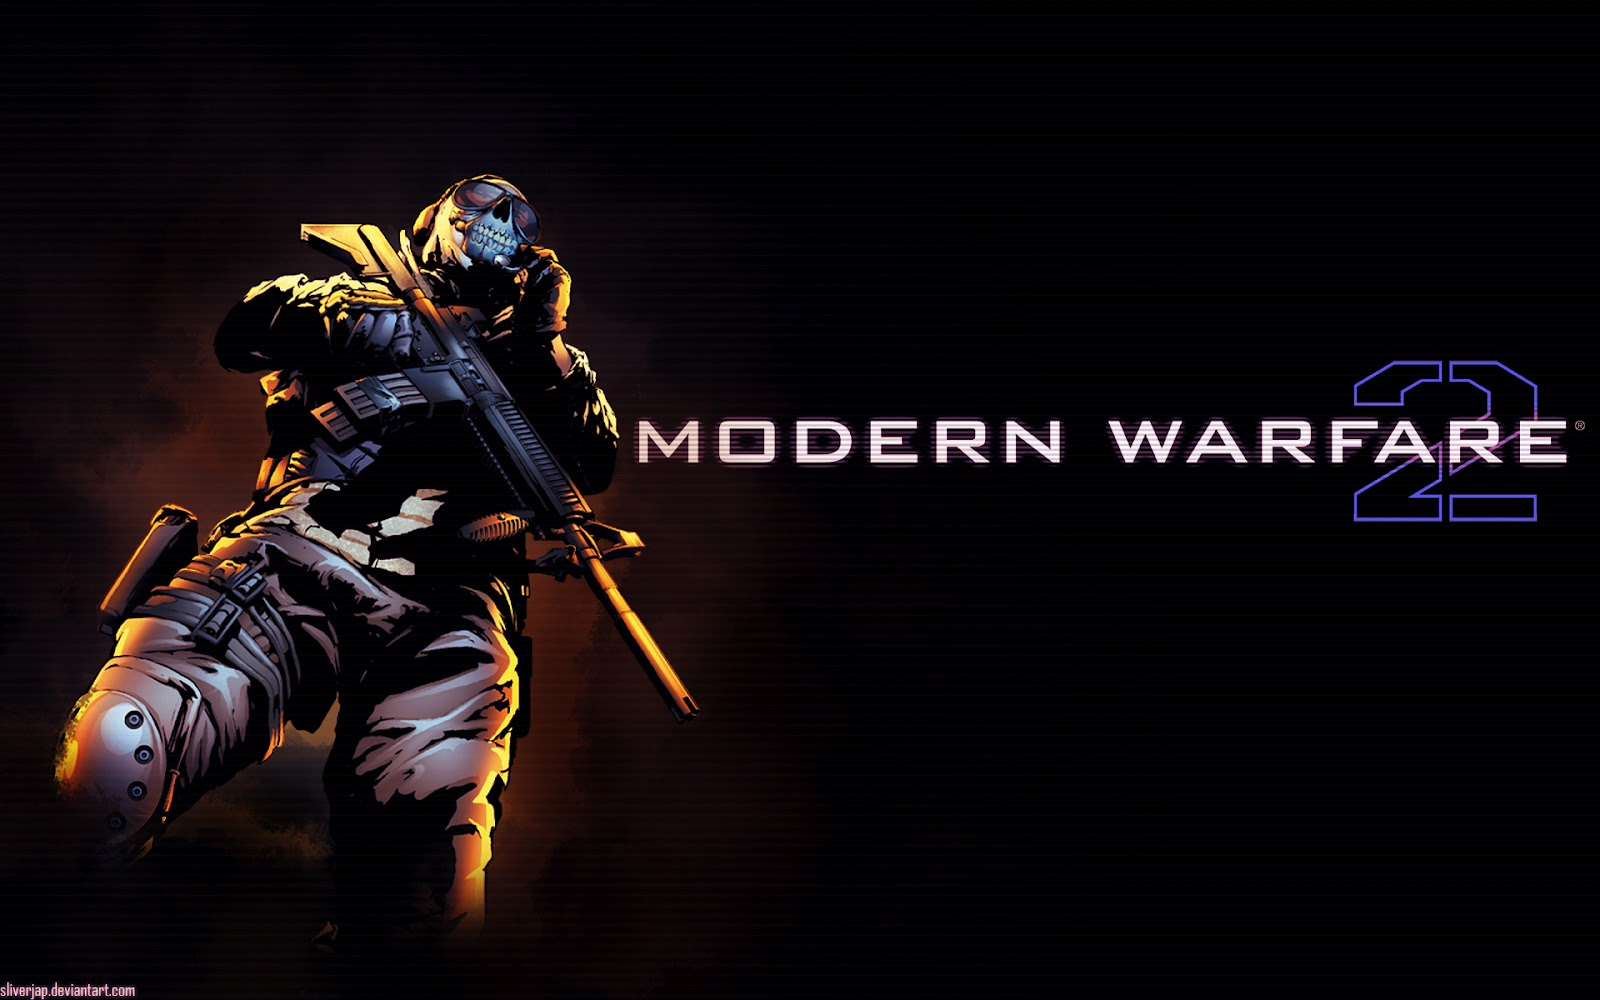 http://1.bp.blogspot.com/-FHQTD6RrCZ4/UAOaf7fp1gI/AAAAAAAABEs/3wDoAL4WubE/s1600/cod+modern+warfare+2+ghost+wallpaper+background+infinity+ward+fps+first+person+shooter.jpg